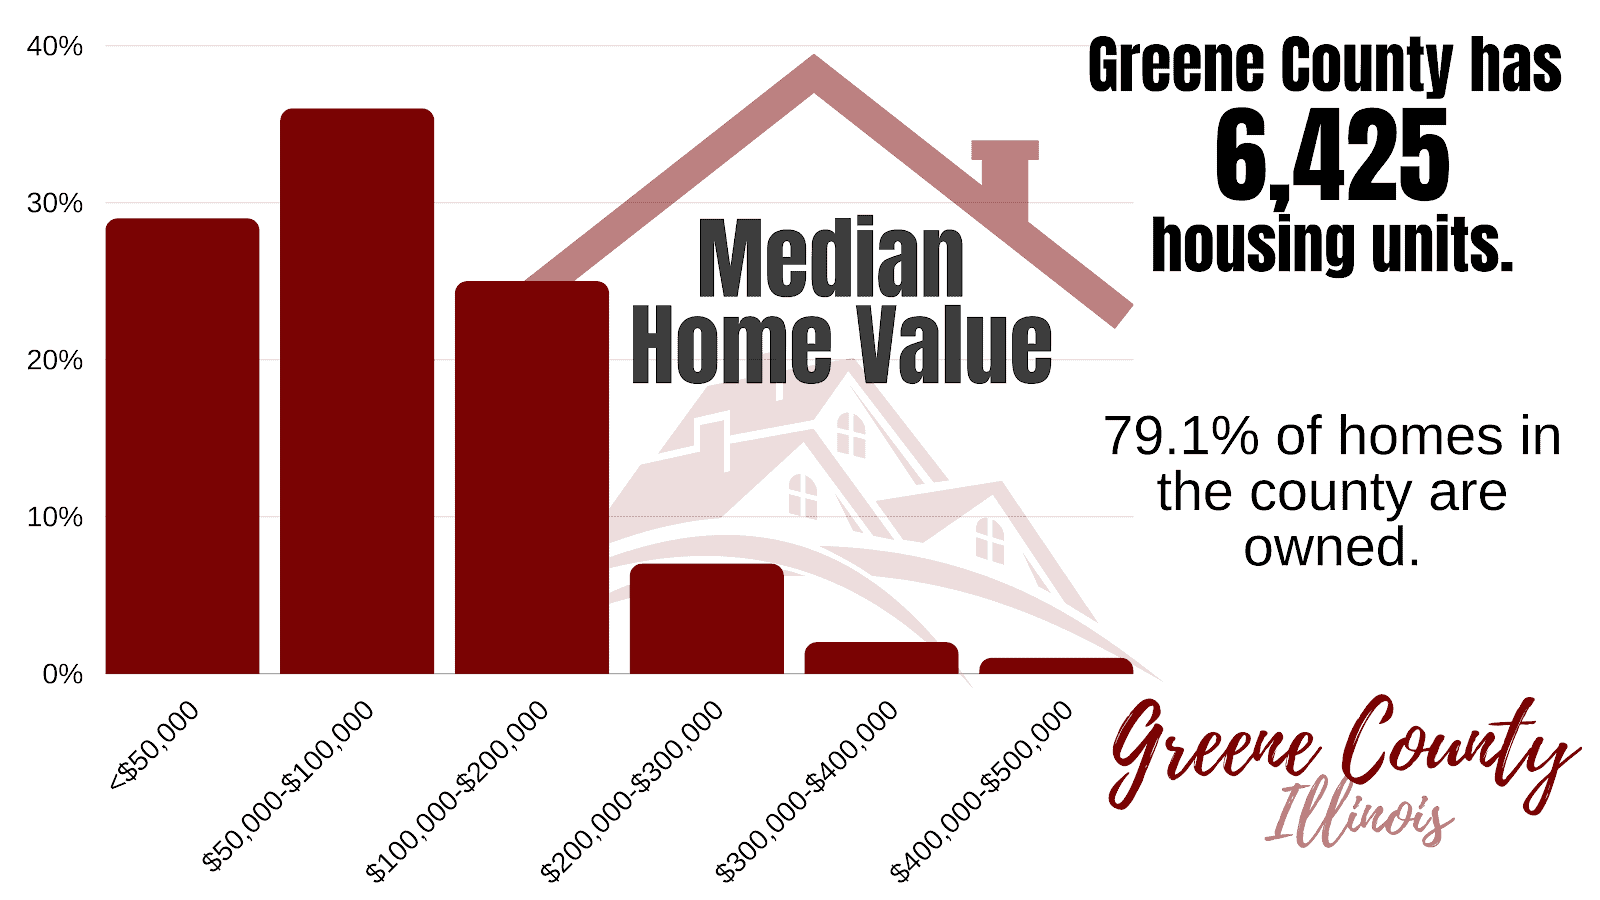 Property Stats for Greene County